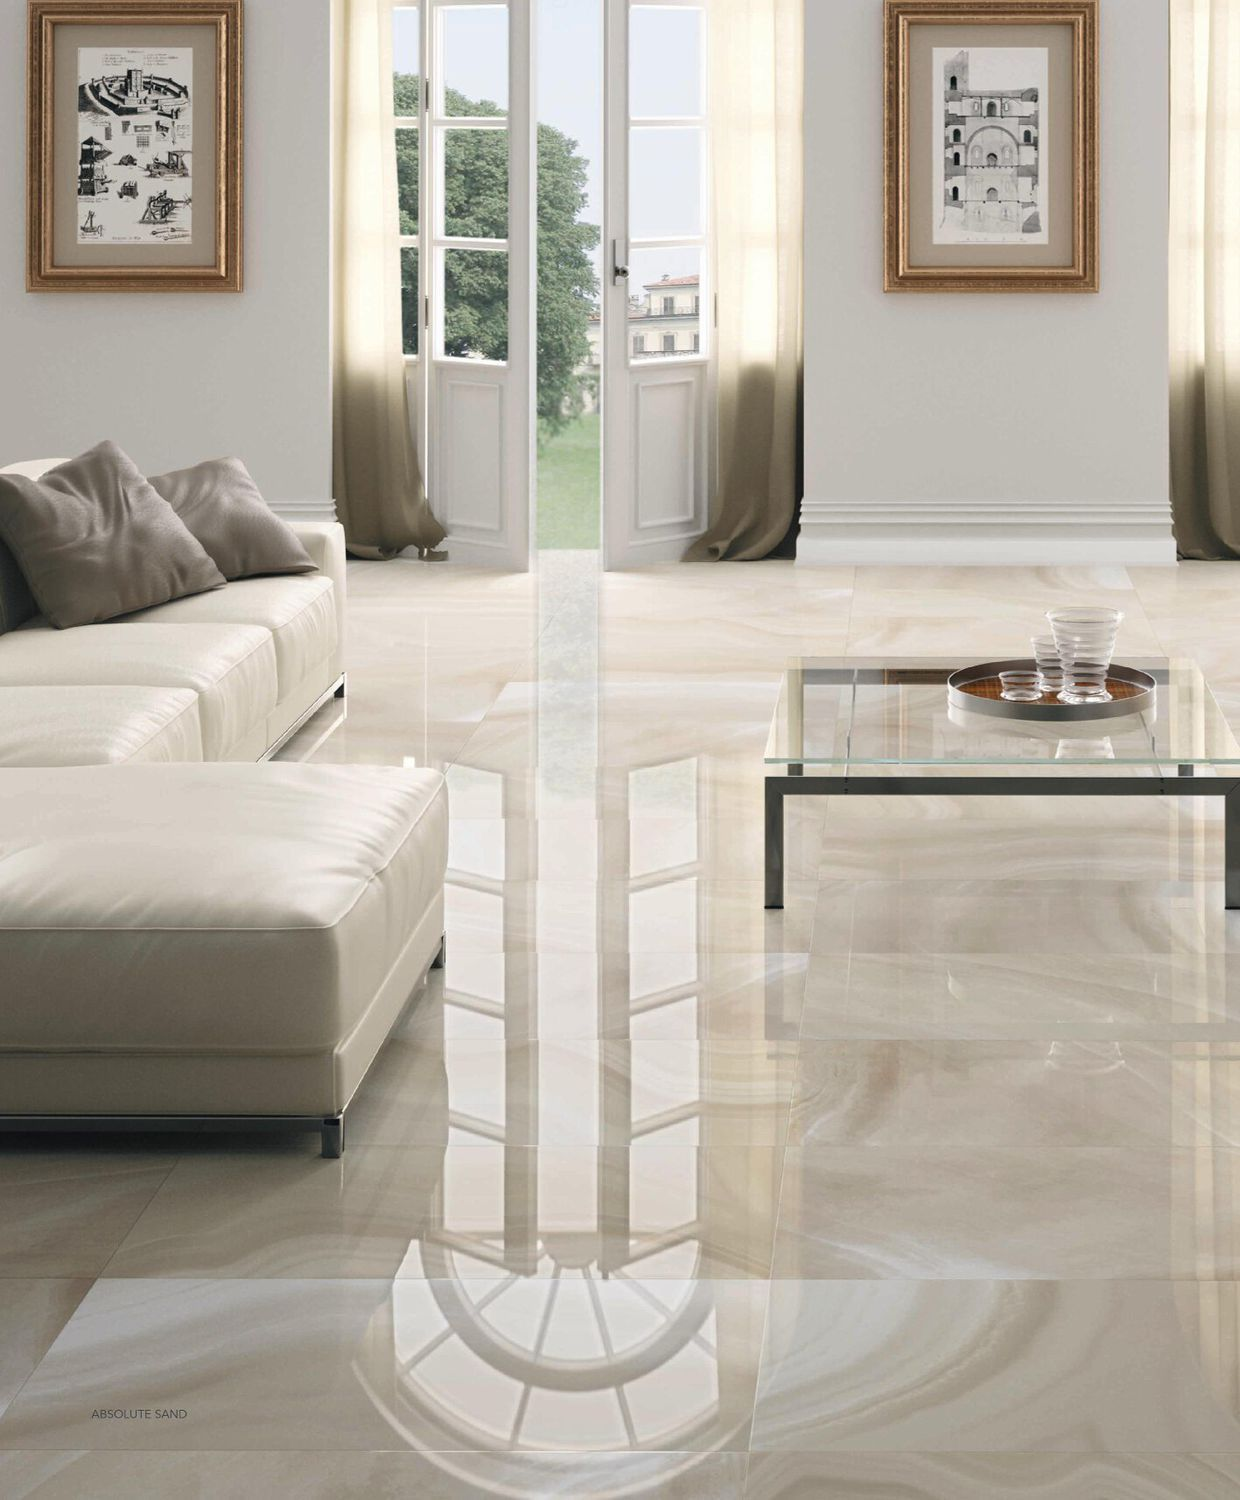 Living Room Floor Tiles Design Unique Floor Tile  Porcelain Stoneware  Highgloss  Stone Look High Inspiration Design